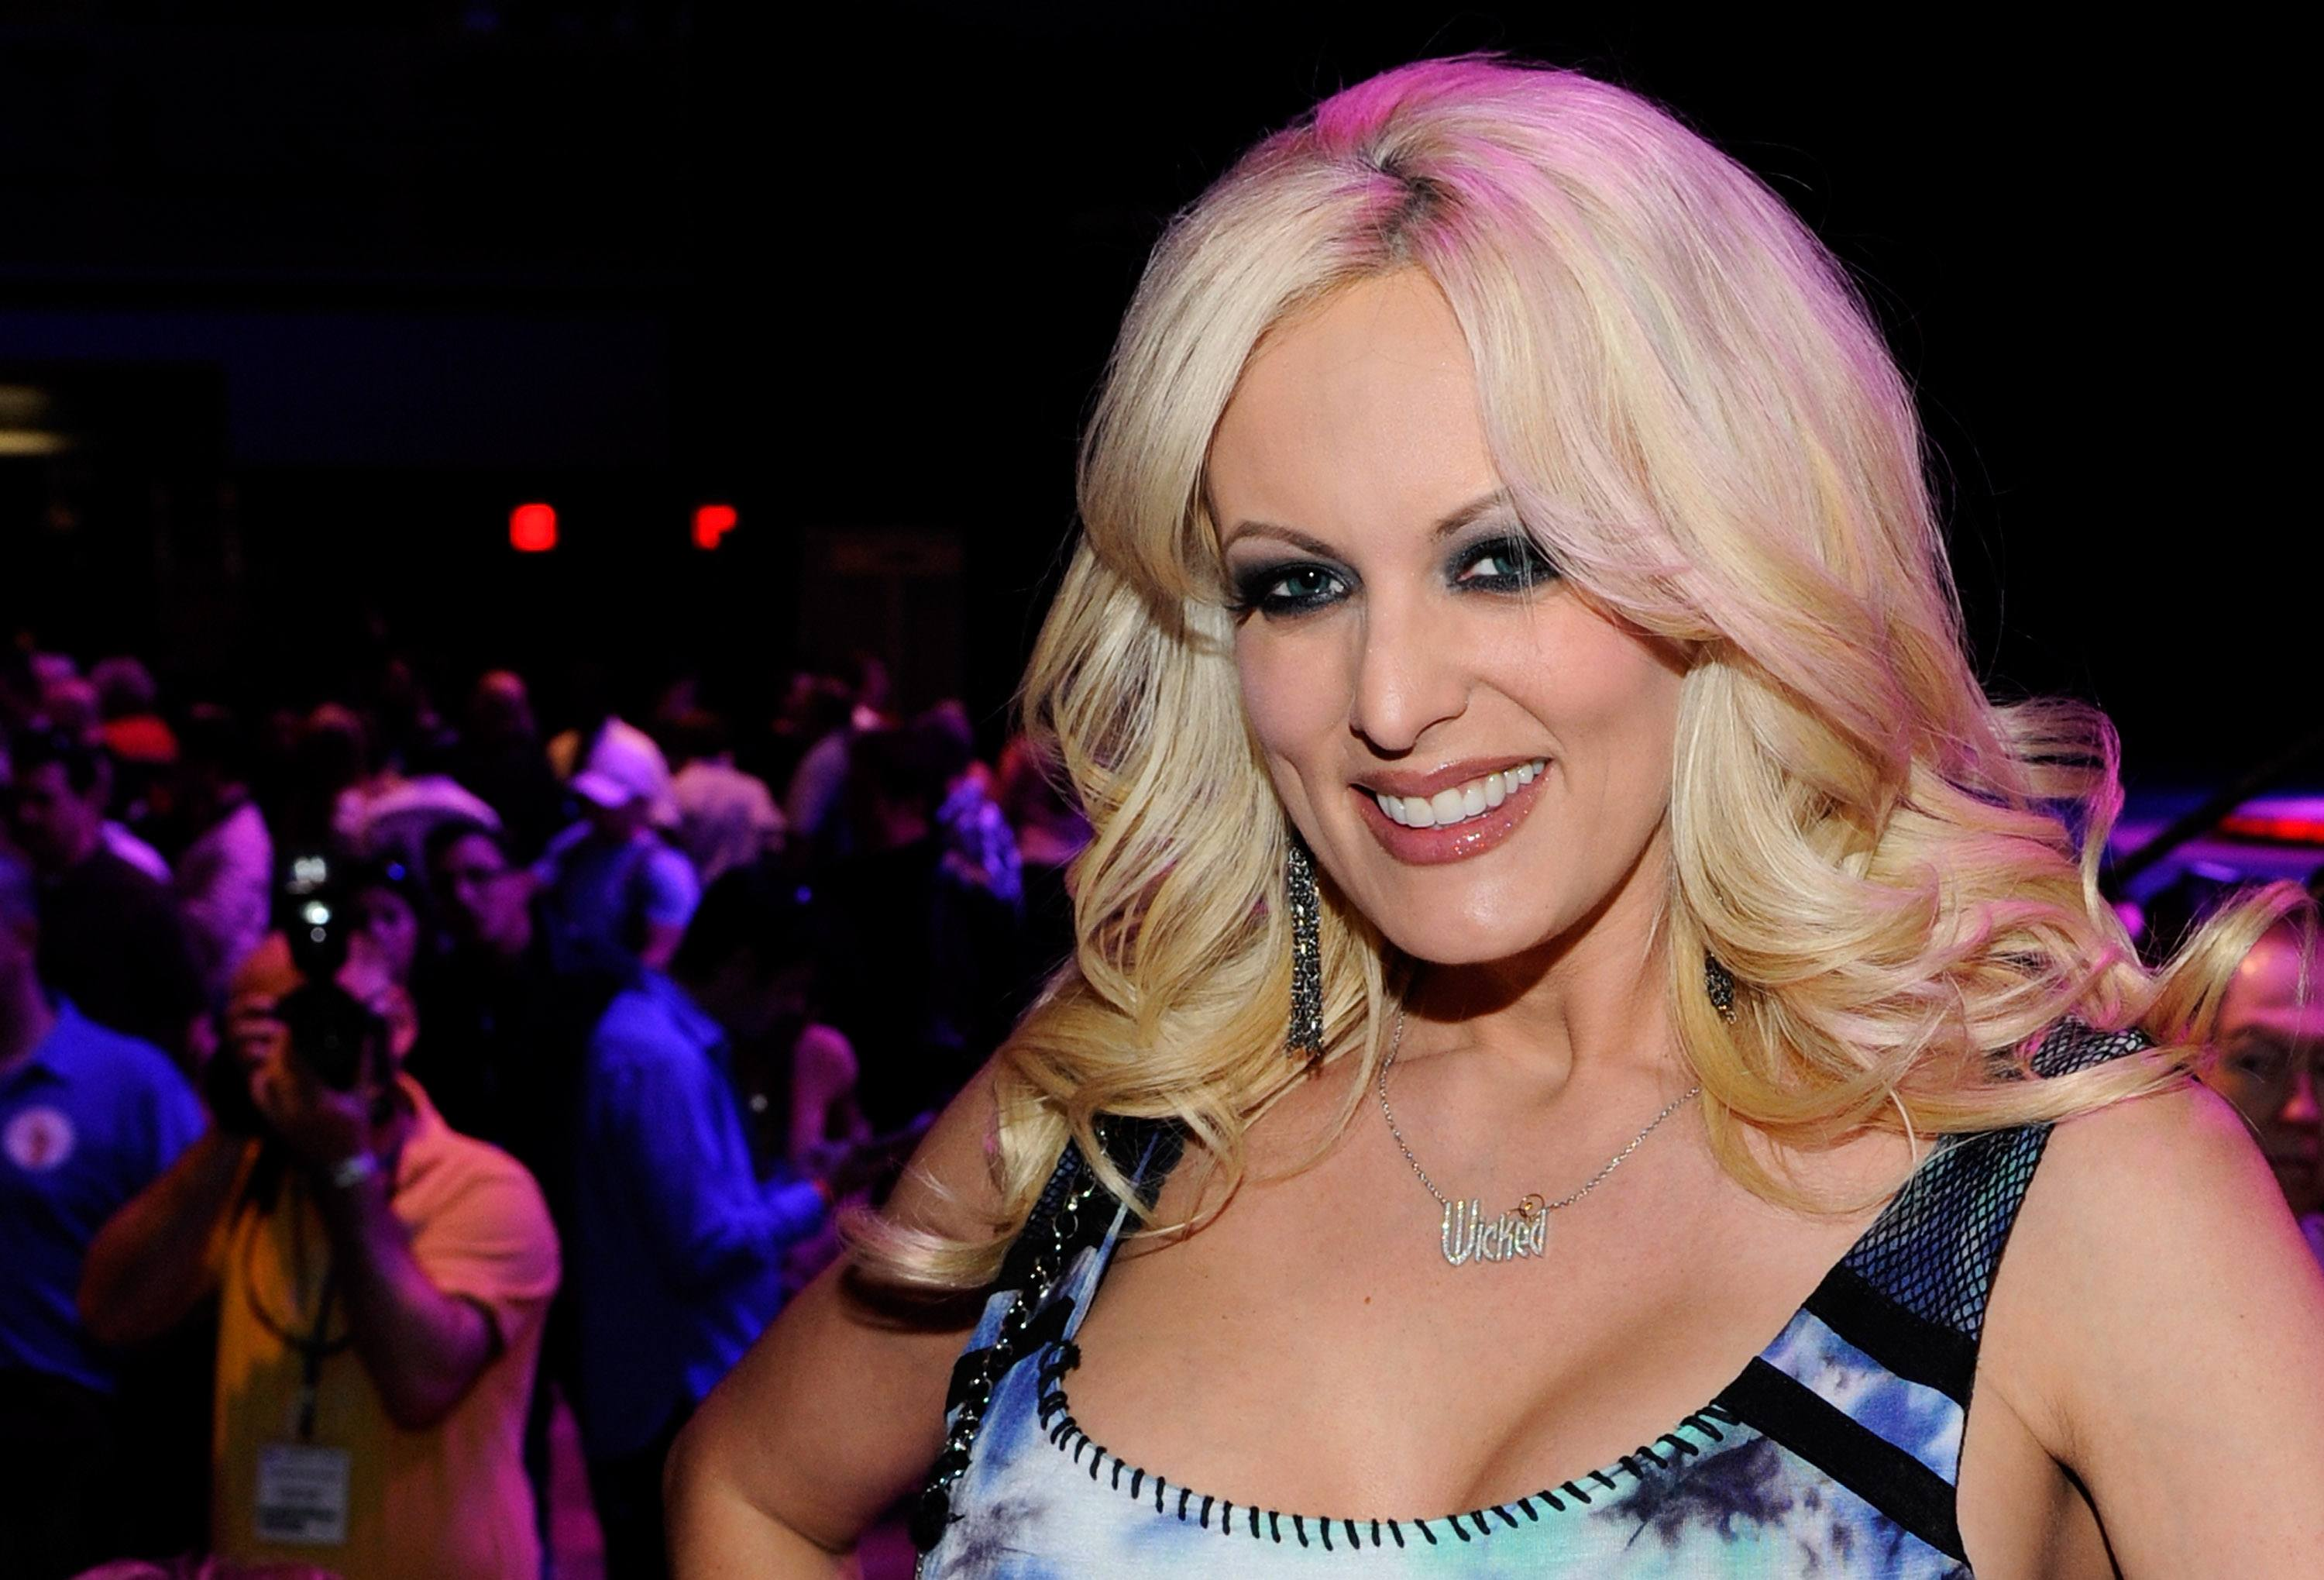 stormy daniels at an adult film expo